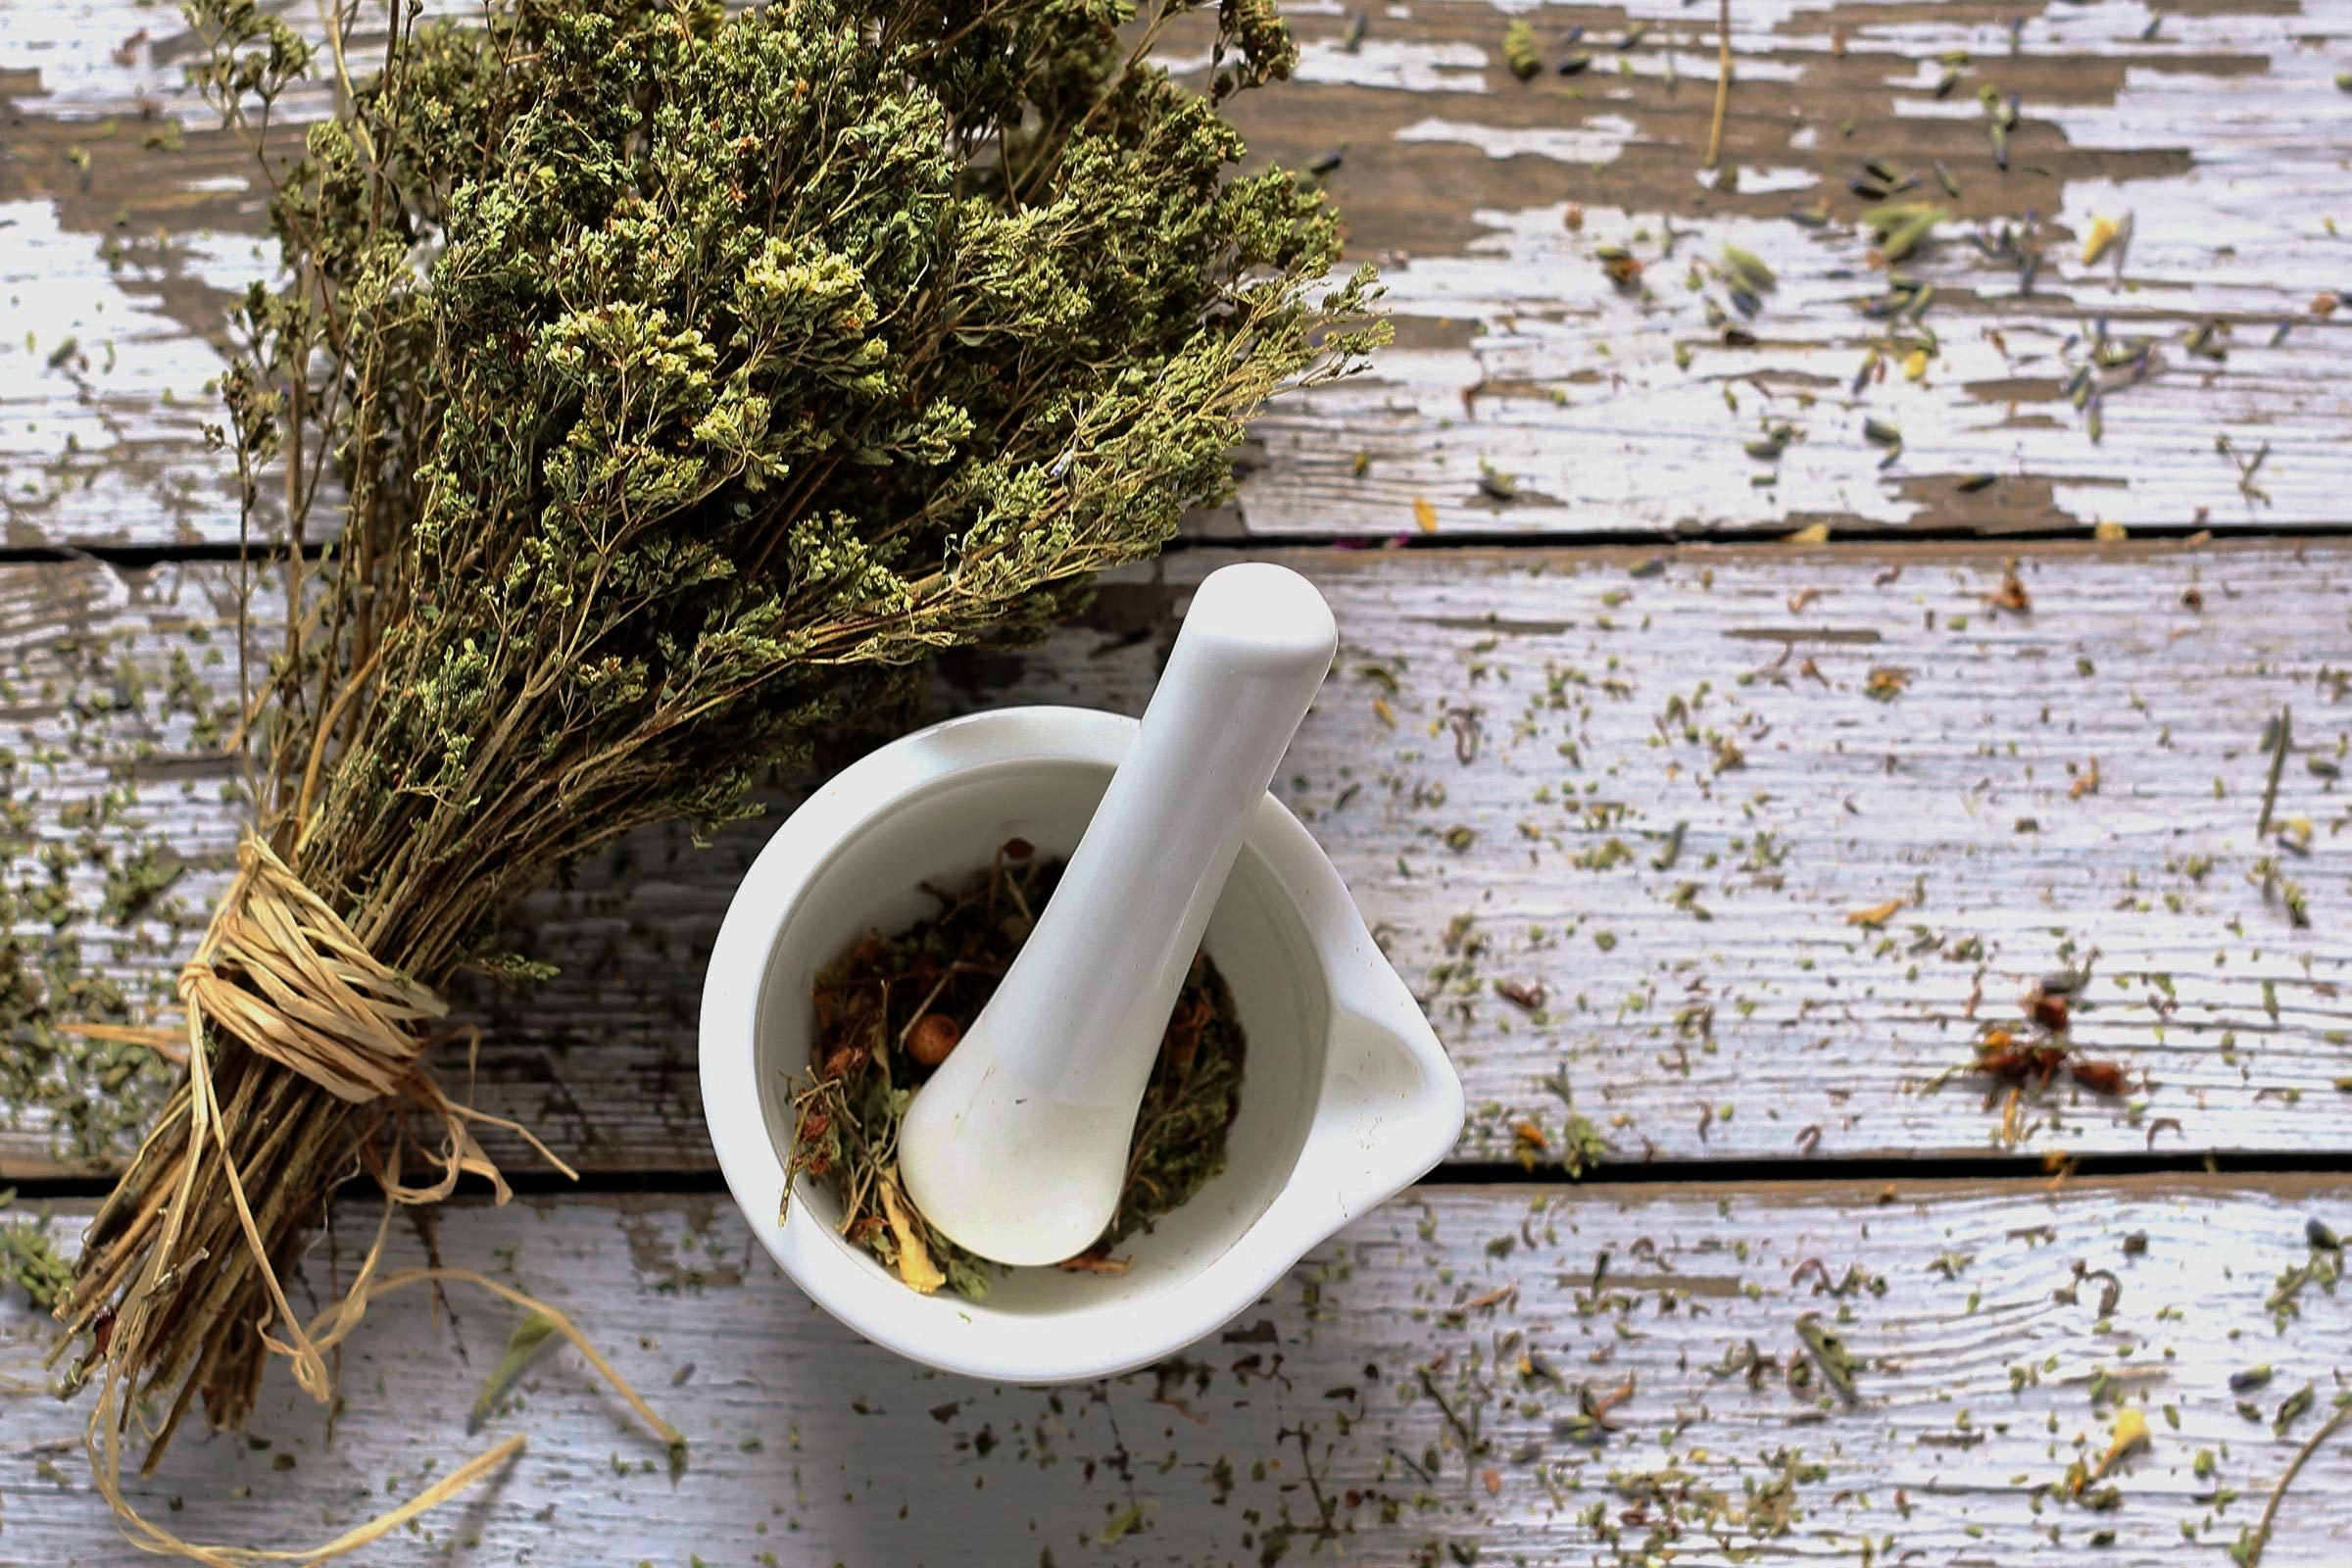 Oregano. Dried herbs in natural medicine and cooking